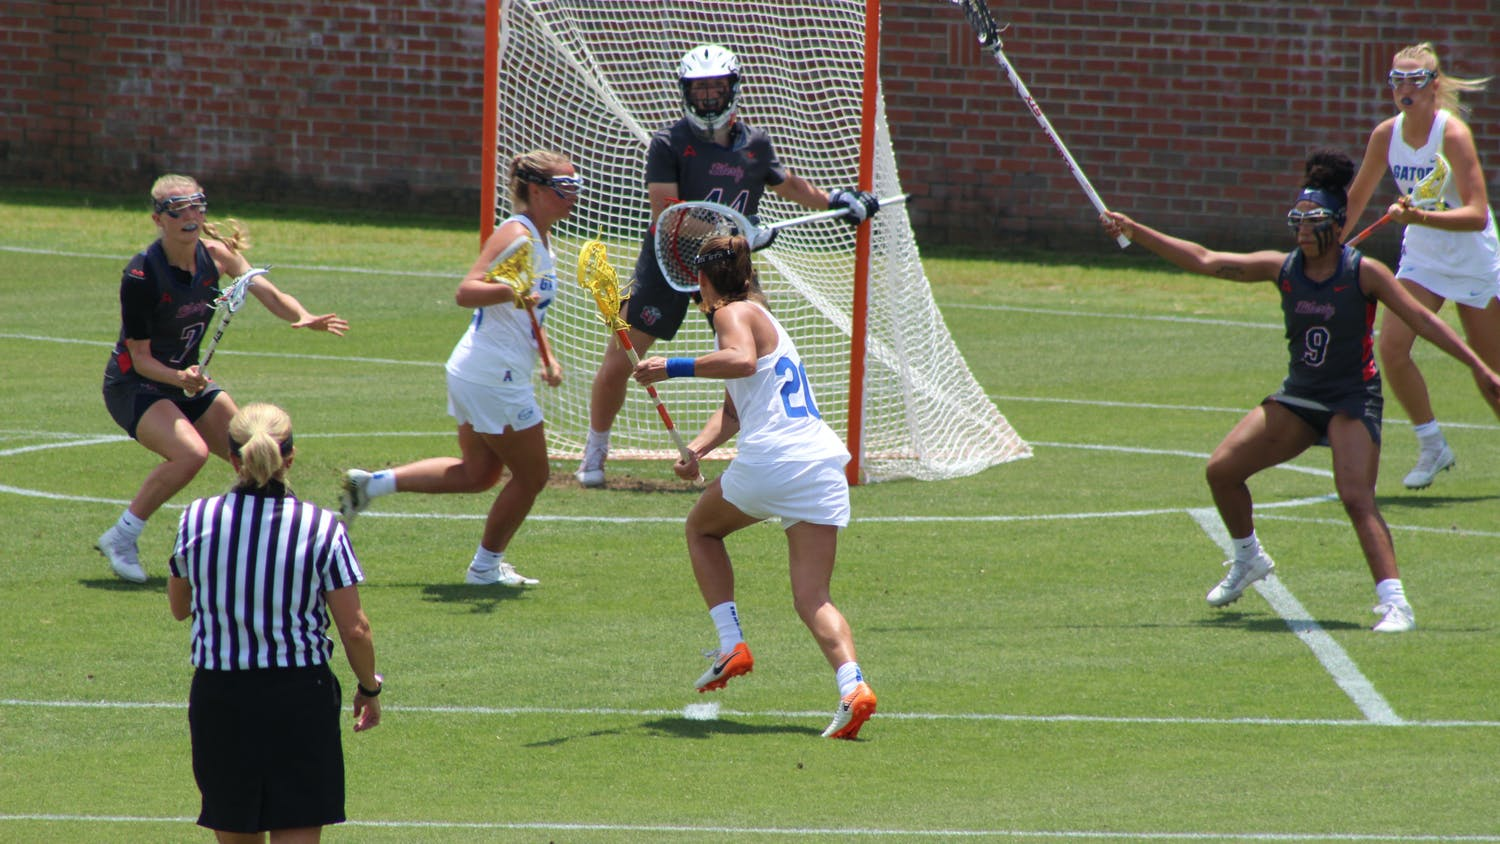 Florida attacker Brianna Harris (No. 20, center) cradles and advances towards Liberty's goal on April 28. The Gators ended their regular season with an 11th straight victory over the Flames, 17-2, to end the year 14-2.